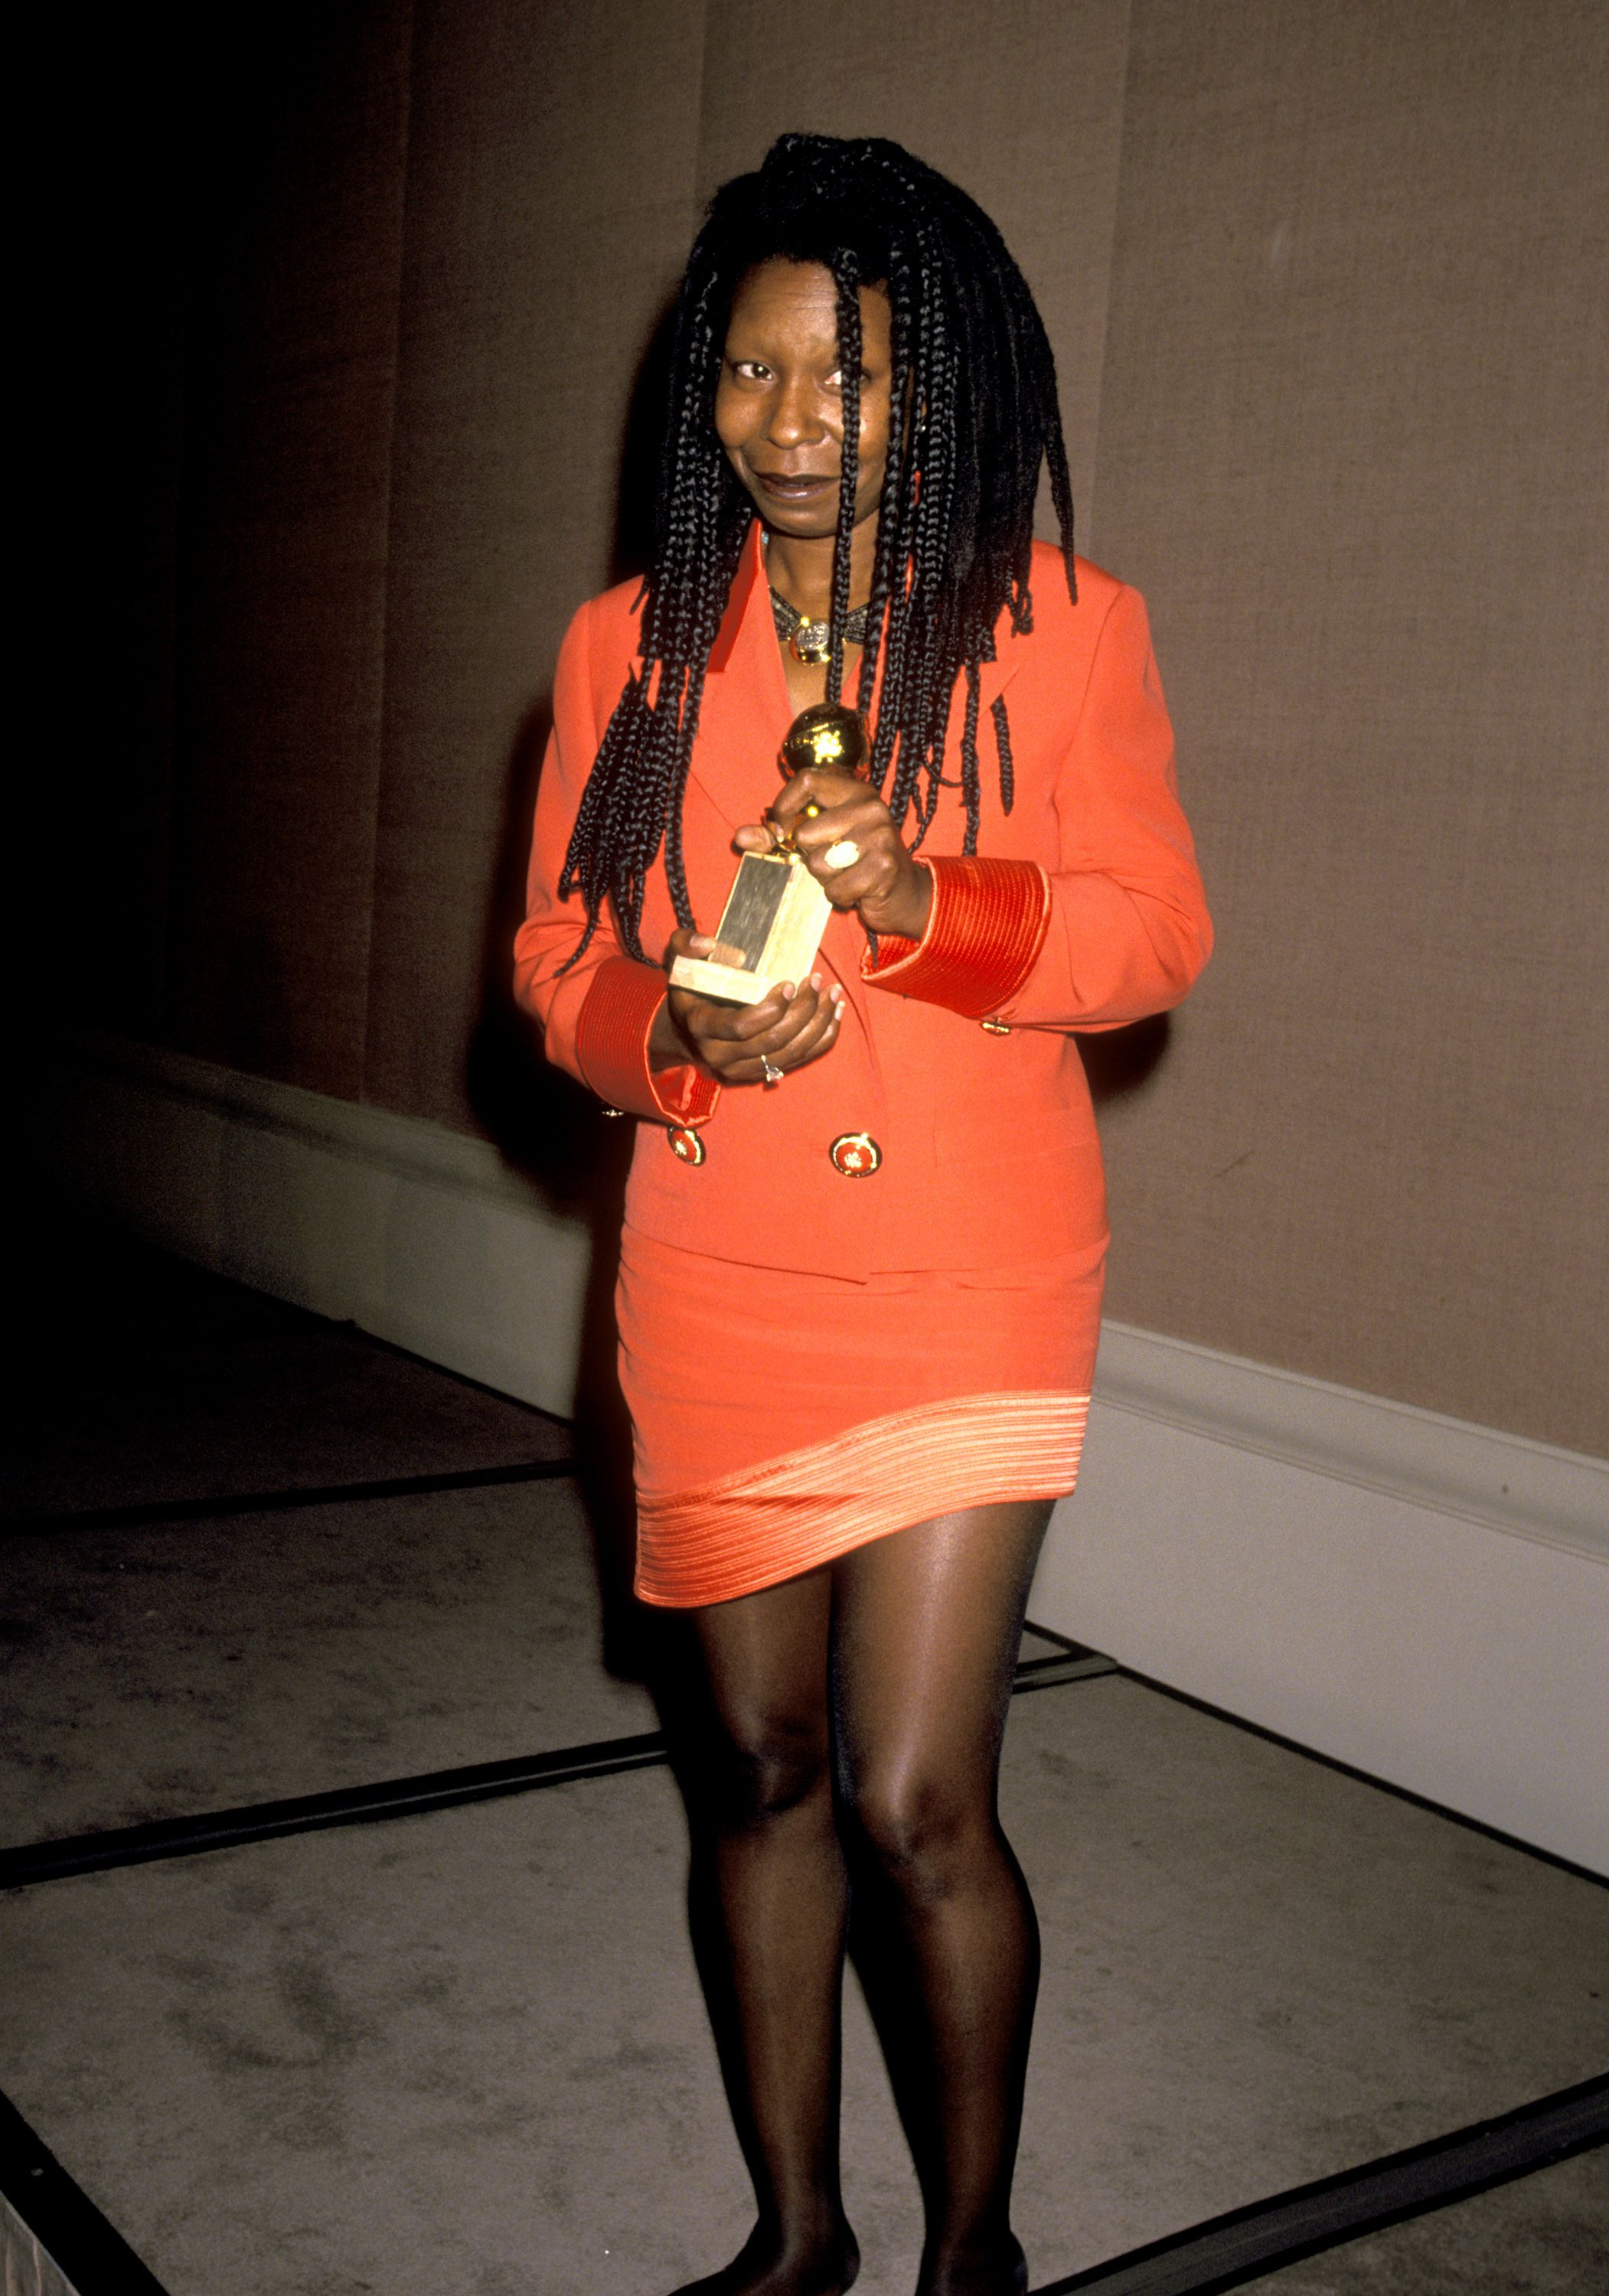 Pics nude youngest Whoopi when goldberg